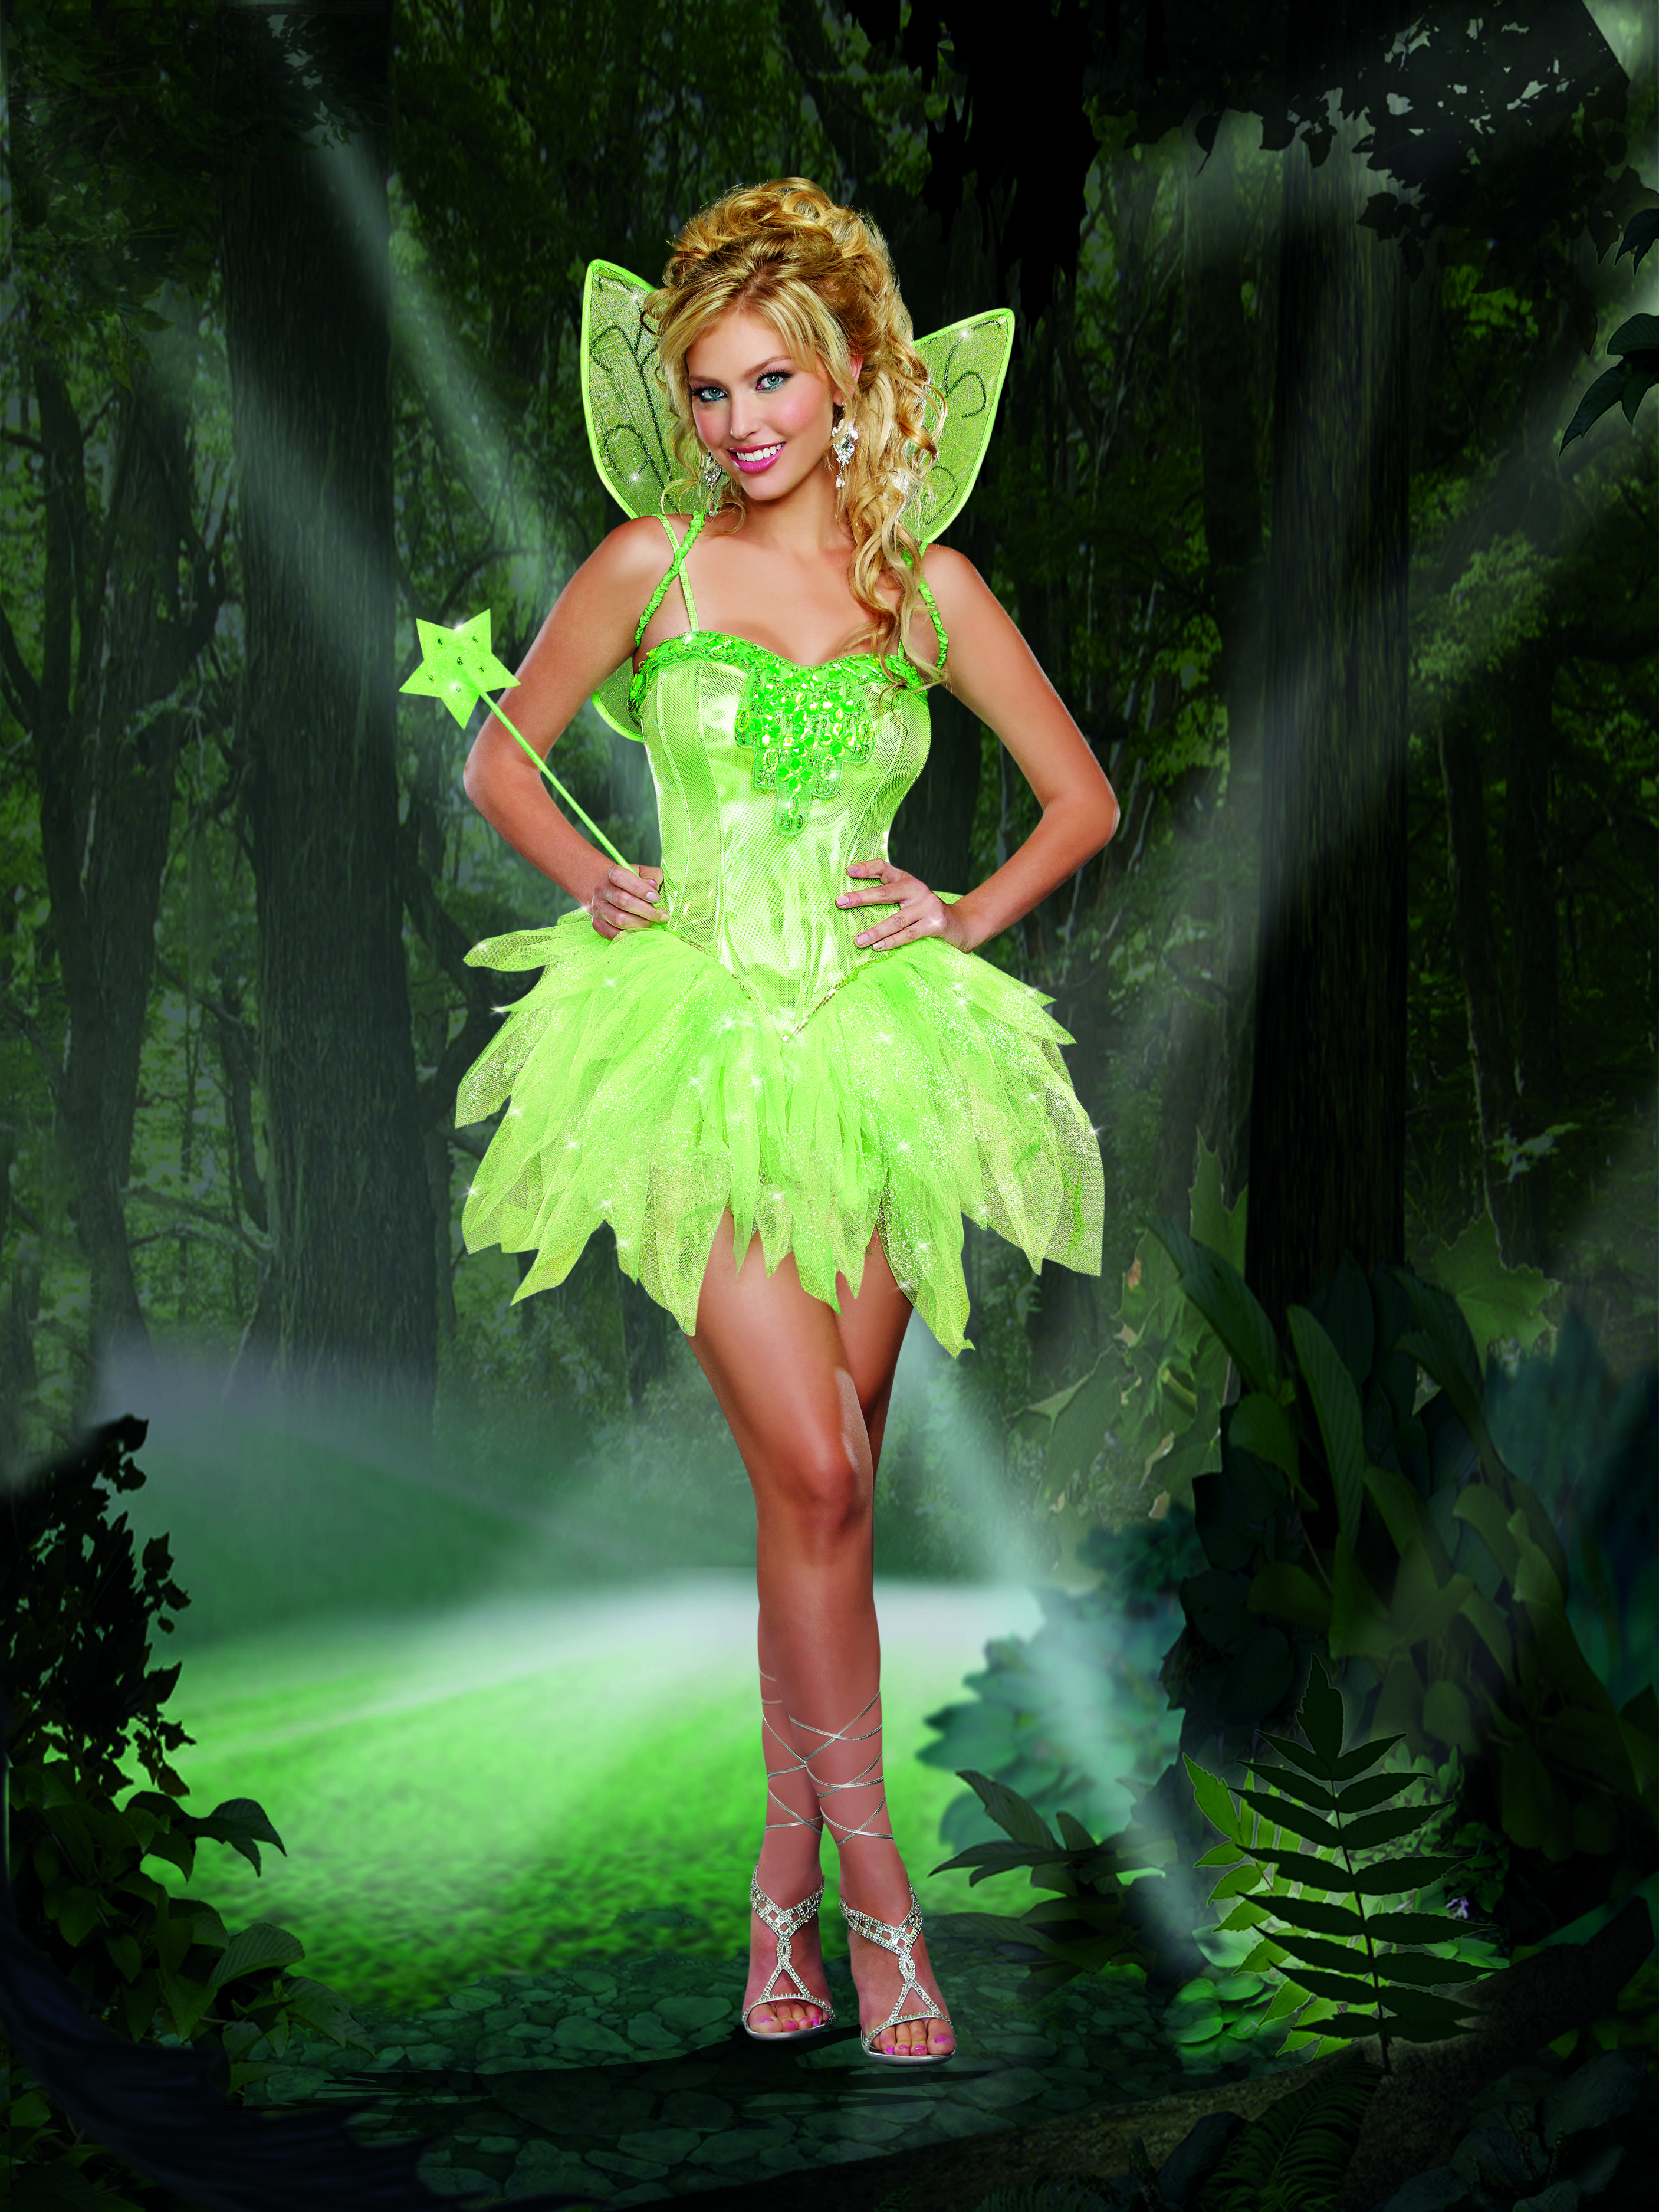 c17f17ae40b Fairy-Licious. Style 9452. S, M, L, XL | Once Upon a Time ...